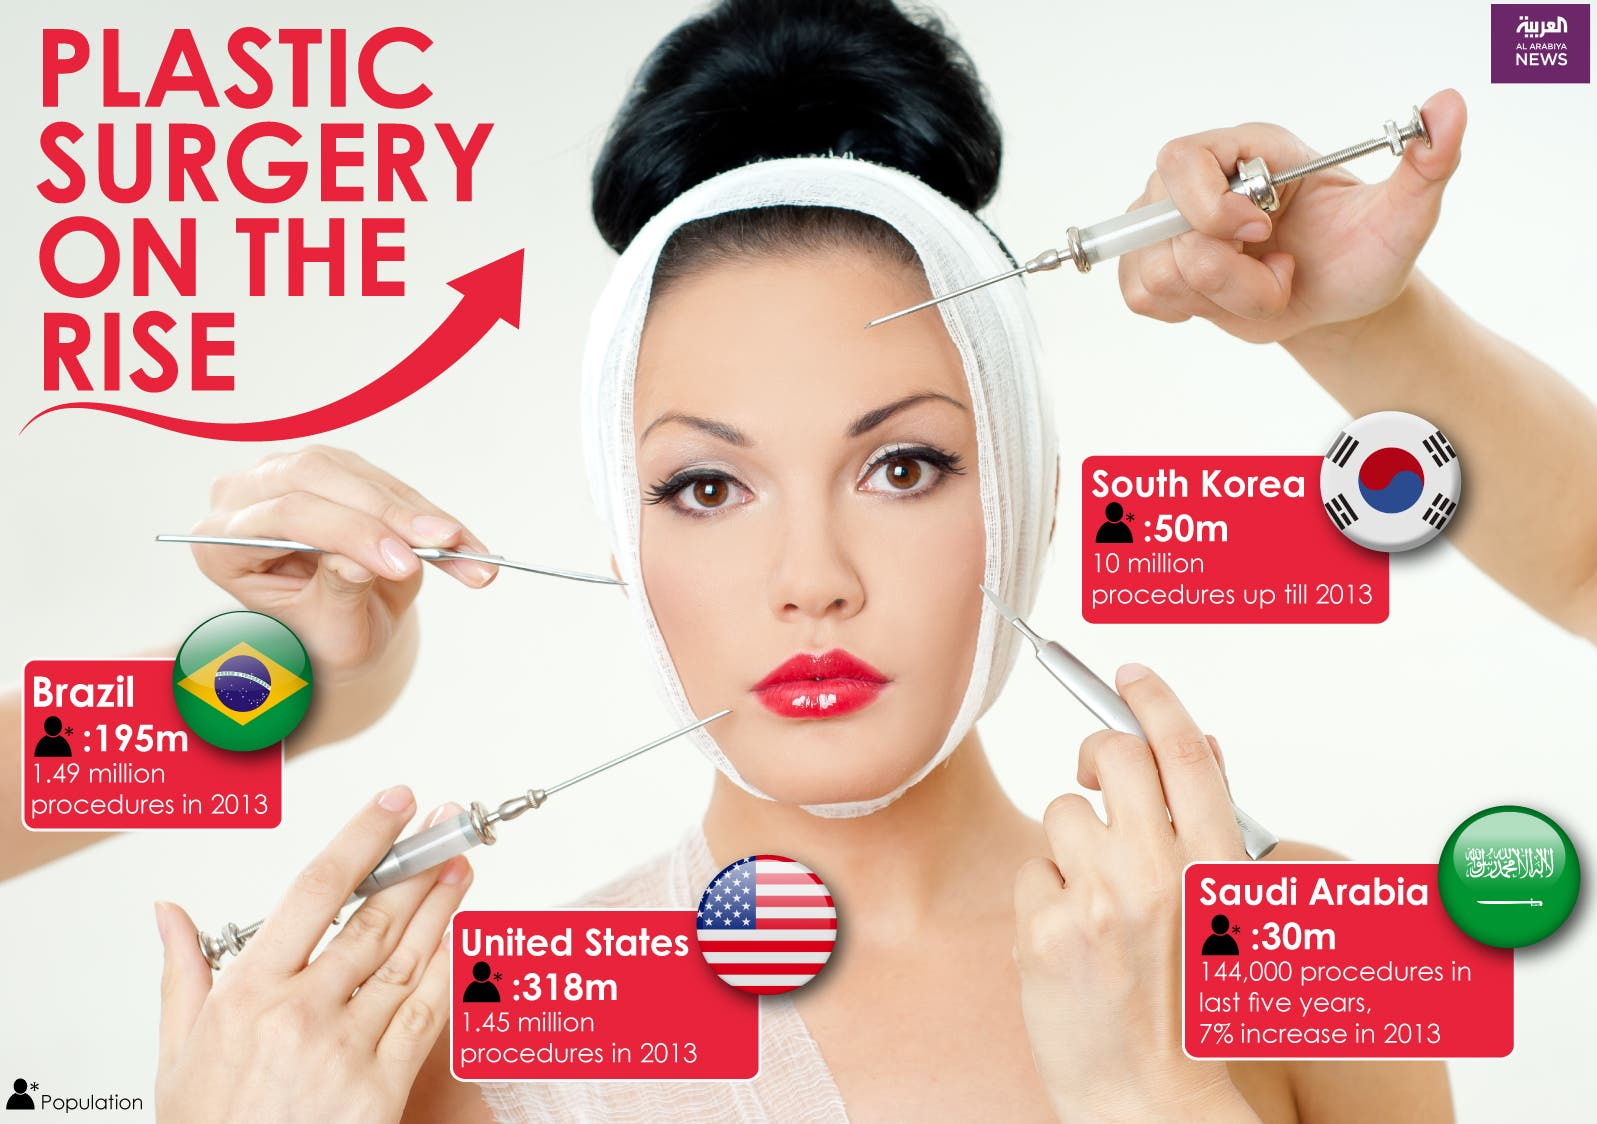 Infographic: Plastic surgery on the rise